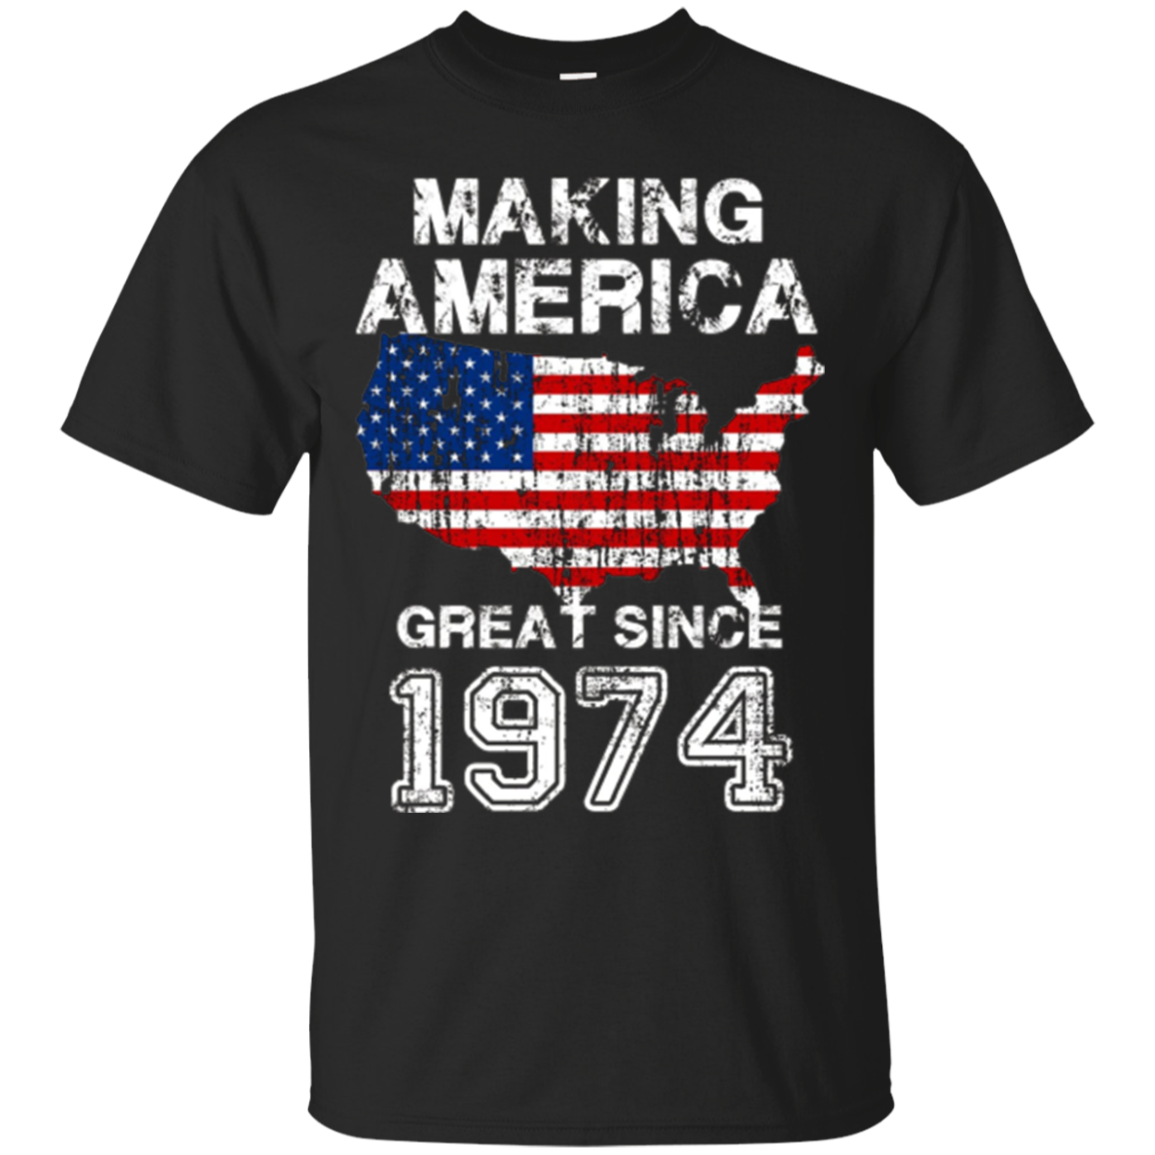 43rd Birthday Gift Shirt for Conservative Man or Woman